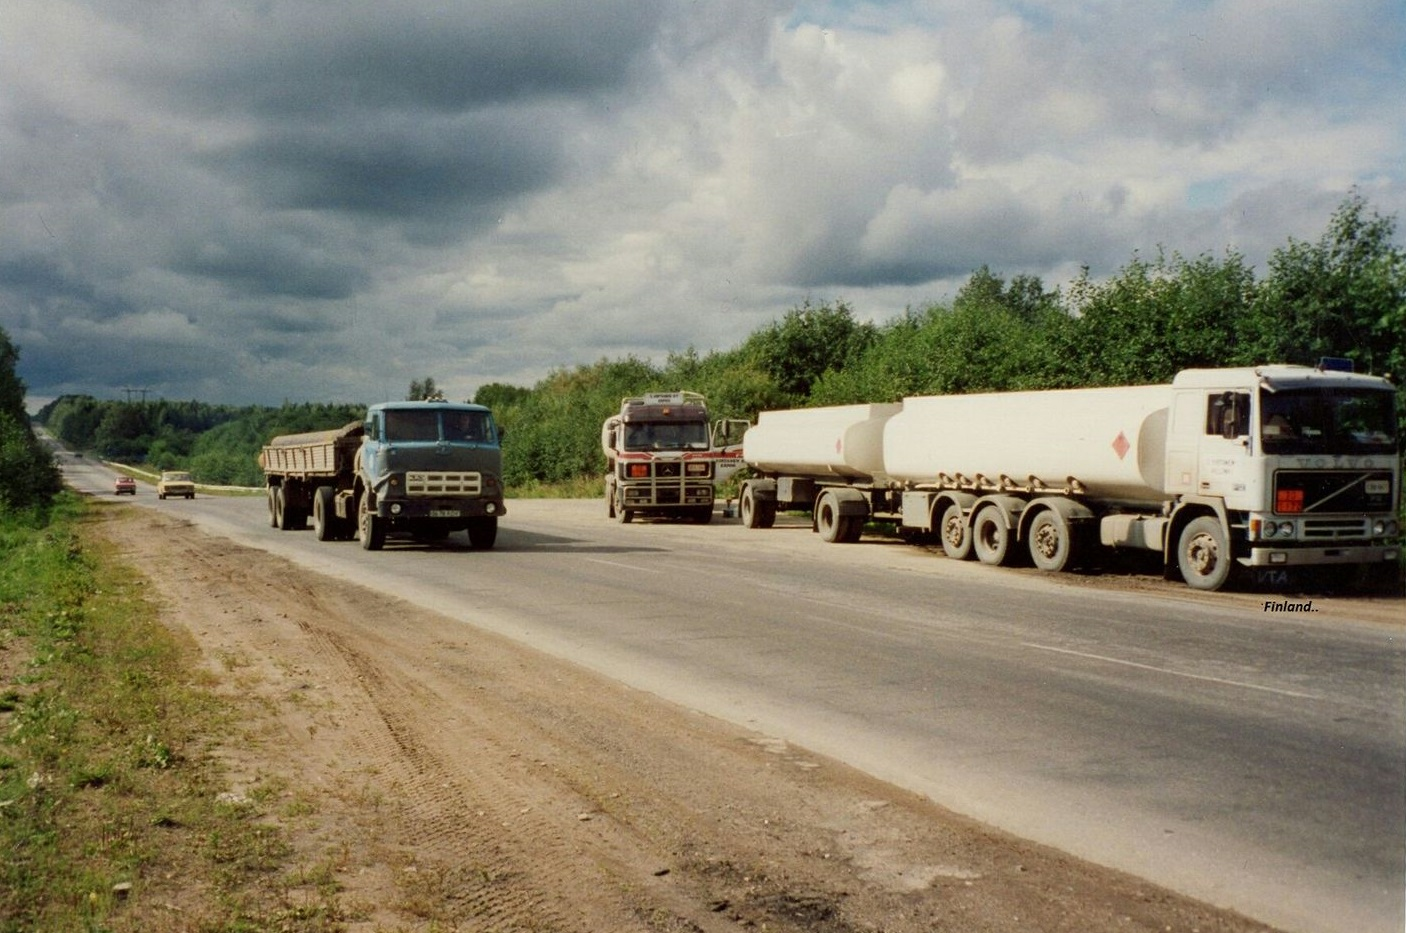 Transport-Espoo-Finland-near-Russia-1990